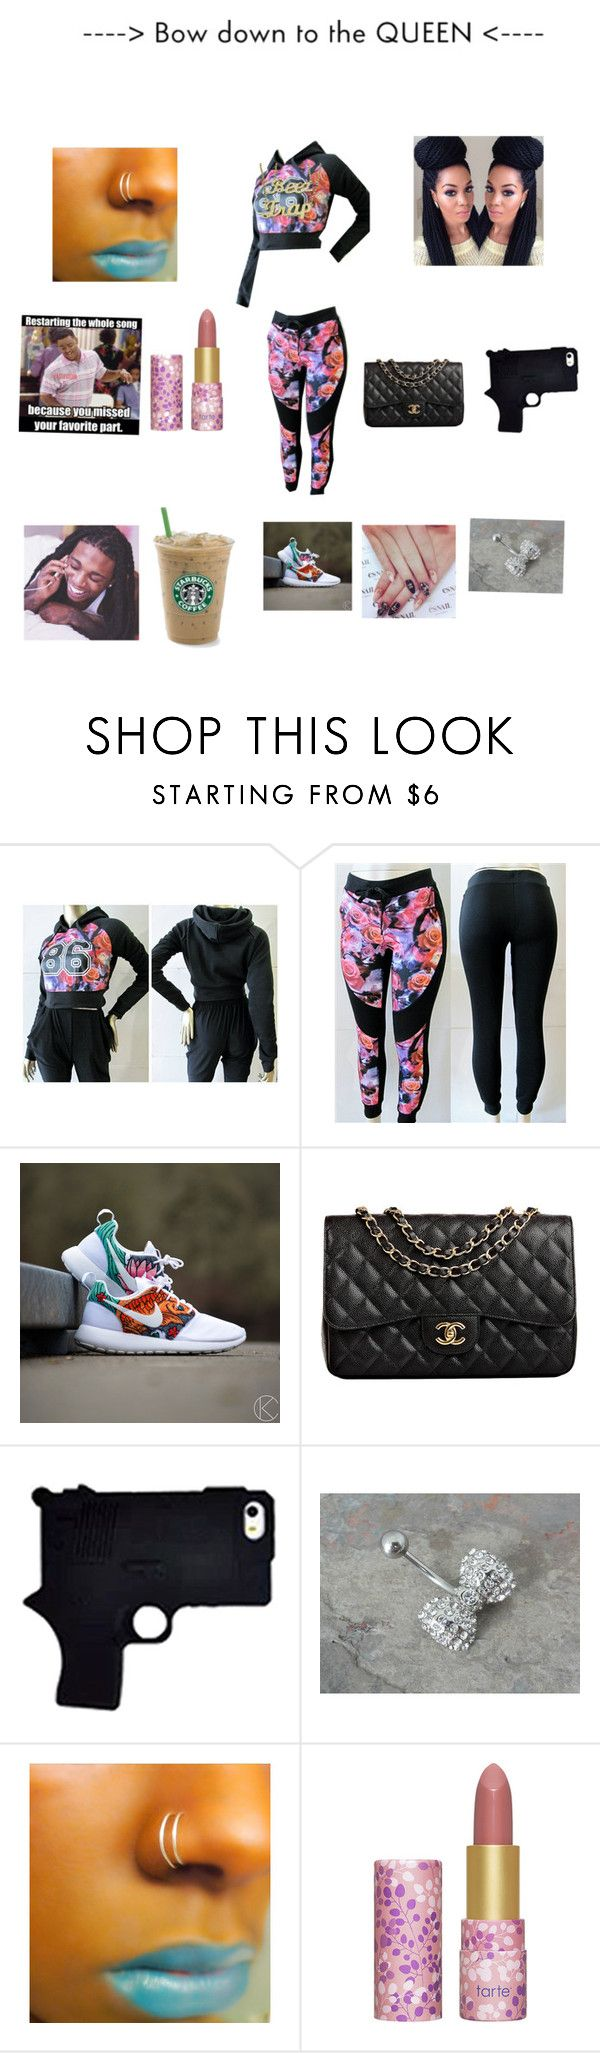 """""""Mornin just woke up bout to get my hair nd feet done 2day so yea!!!!!!"""" by litt13 ❤ liked on Polyvore featuring NIKE, Chanel, Nicki Minaj and tarte"""